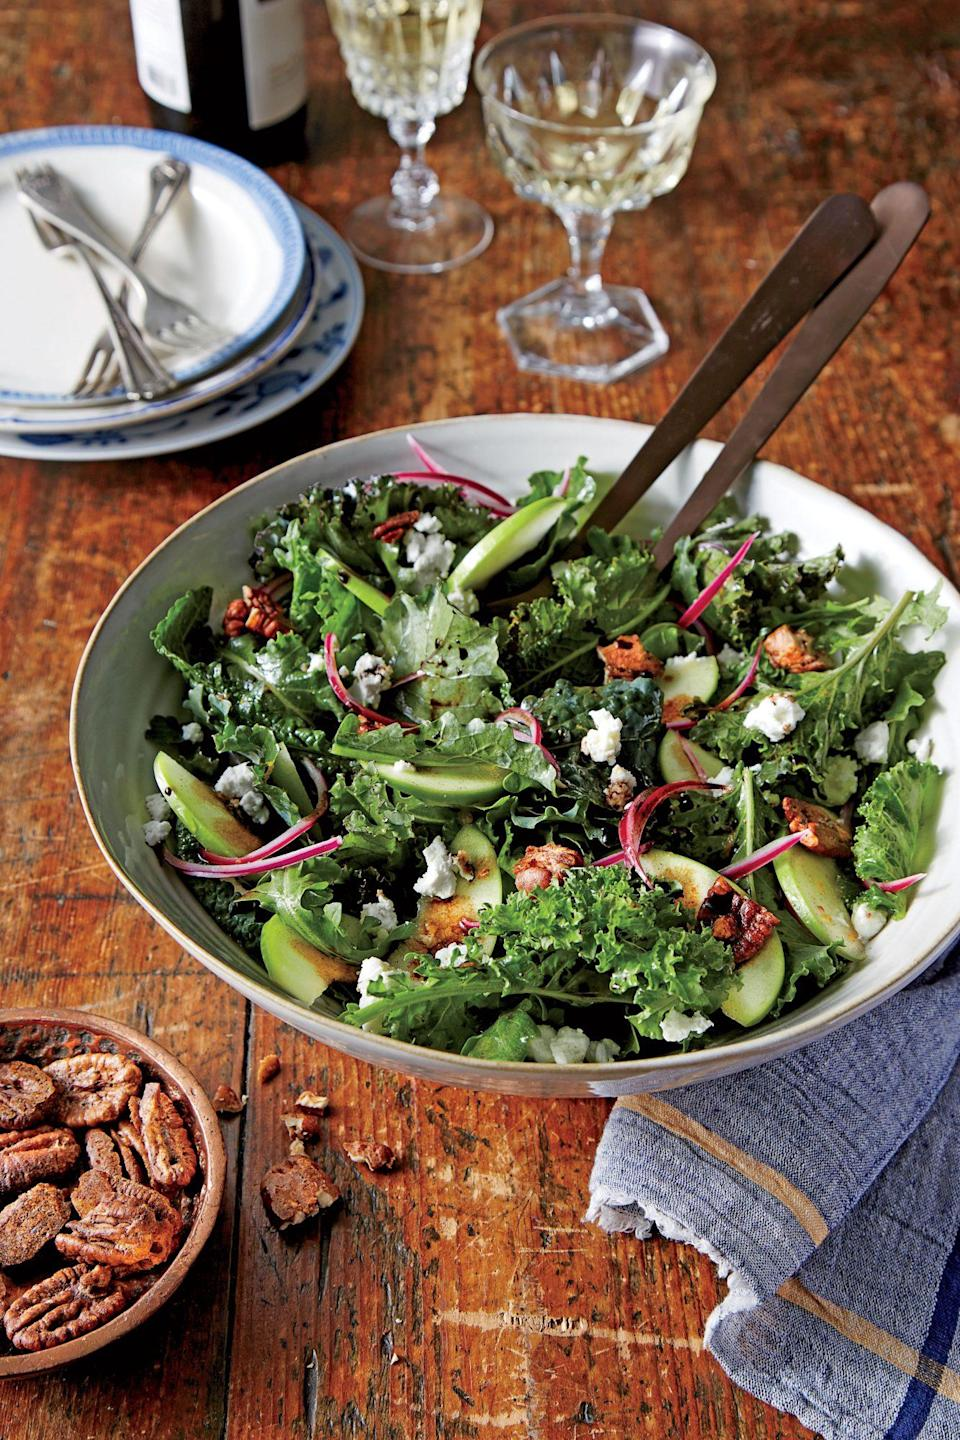 """<p><strong>Recipe: <a href=""""https://www.southernliving.com/recipes/apple-and-goat-cheese-salad-with-candied-pecans-recipe"""" rel=""""nofollow noopener"""" target=""""_blank"""" data-ylk=""""slk:Apple and Goat Cheese Salad with Candied"""" class=""""link rapid-noclick-resp"""">Apple and Goat Cheese Salad with Candied </a><a href=""""https://www.southernliving.com/recipes/apple-and-goat-cheese-salad-with-candied-pecans-recipe"""" rel=""""nofollow noopener"""" target=""""_blank"""" data-ylk=""""slk:Pecans"""" class=""""link rapid-noclick-resp"""">Pecans</a></strong></p> <p>Spicy, paprika-laden pecans provide a smoky element to this crispy apple and winter greens salad. Creamy goat cheese mellows the strong flavors and the vinaigrette brings fall vibes with allspice, orange zest, and lemon juice. </p>"""